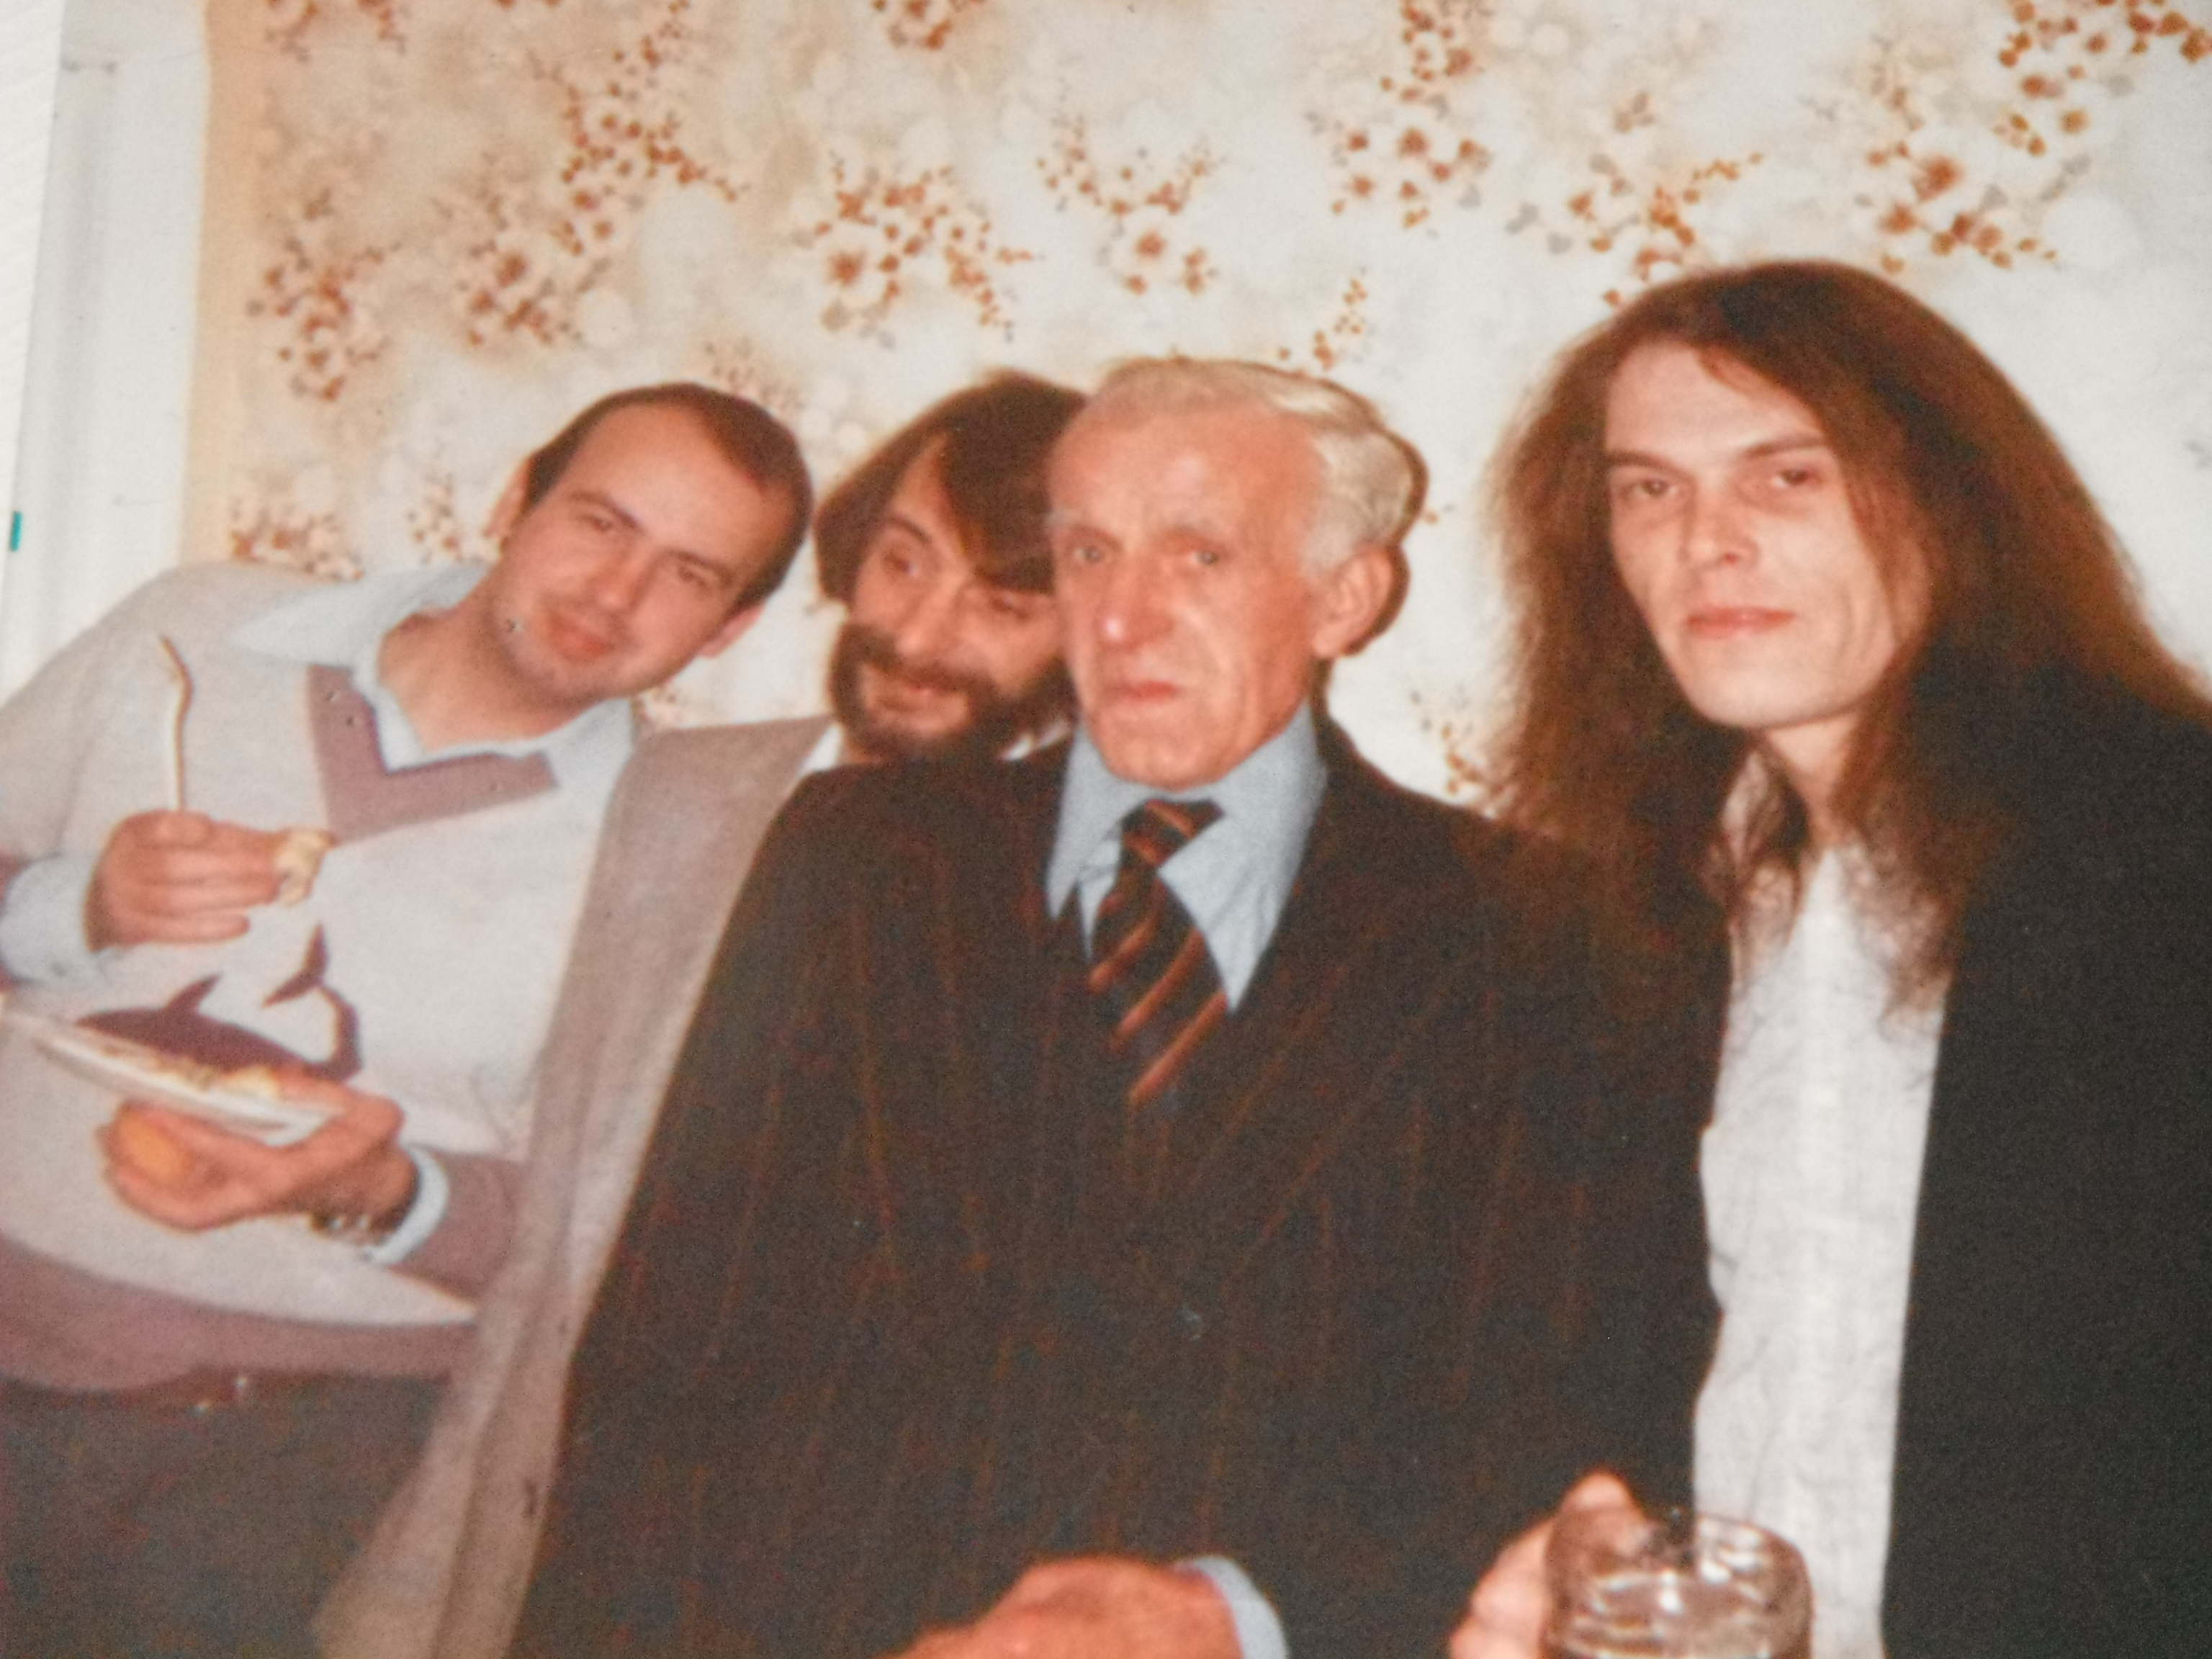 Photo tken by family - me (left)with my Mum's dad and two of my uncles, all except me now sadly deceased